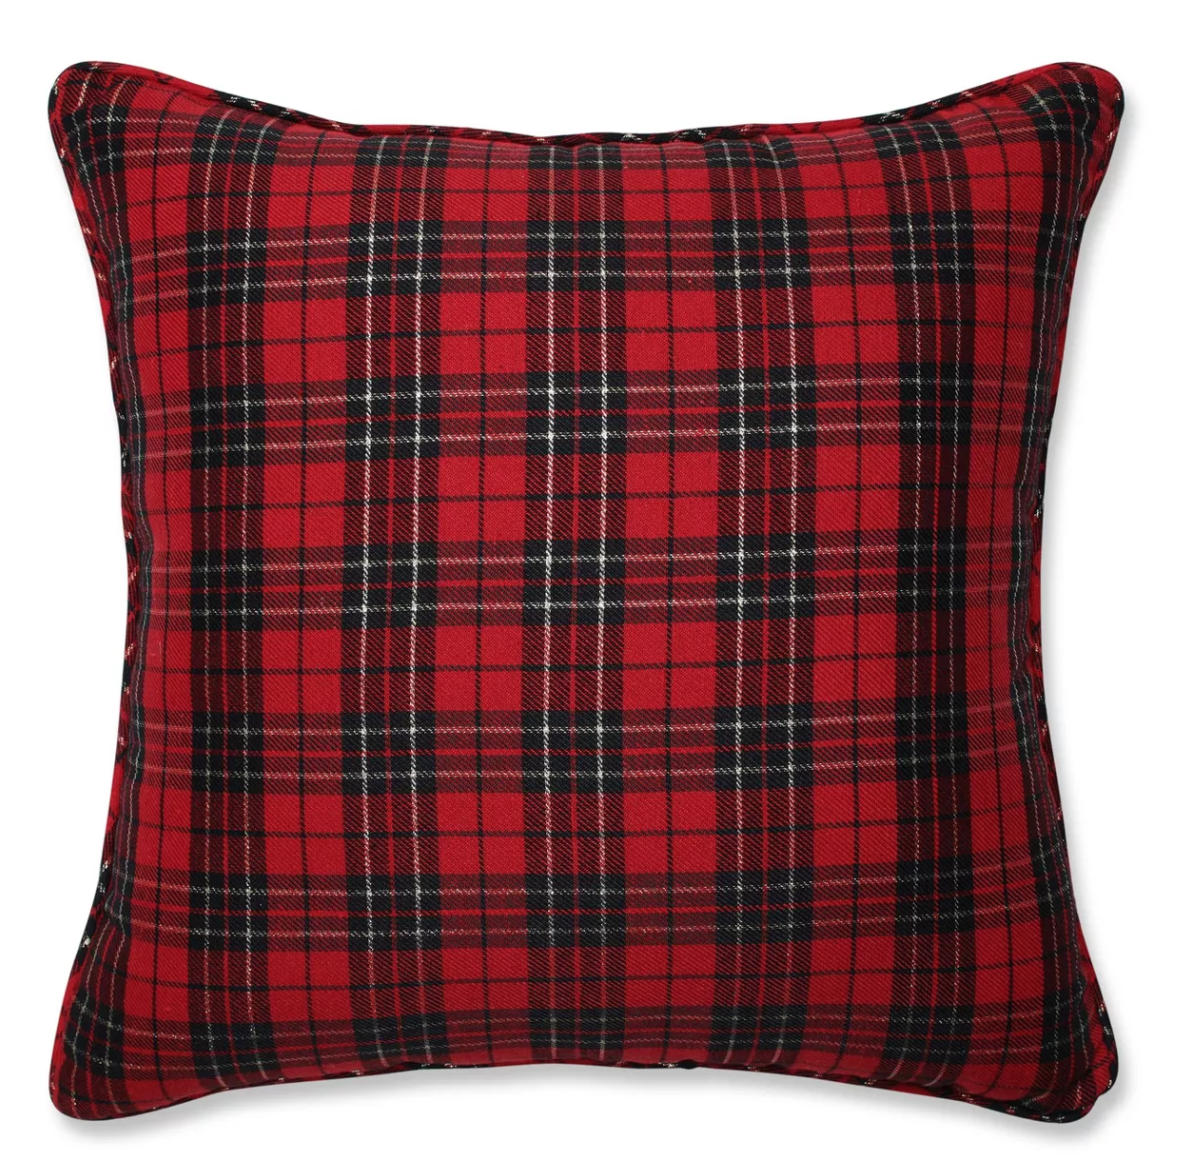 Farmhouse Holiday Decor - Christmas Pillow.png